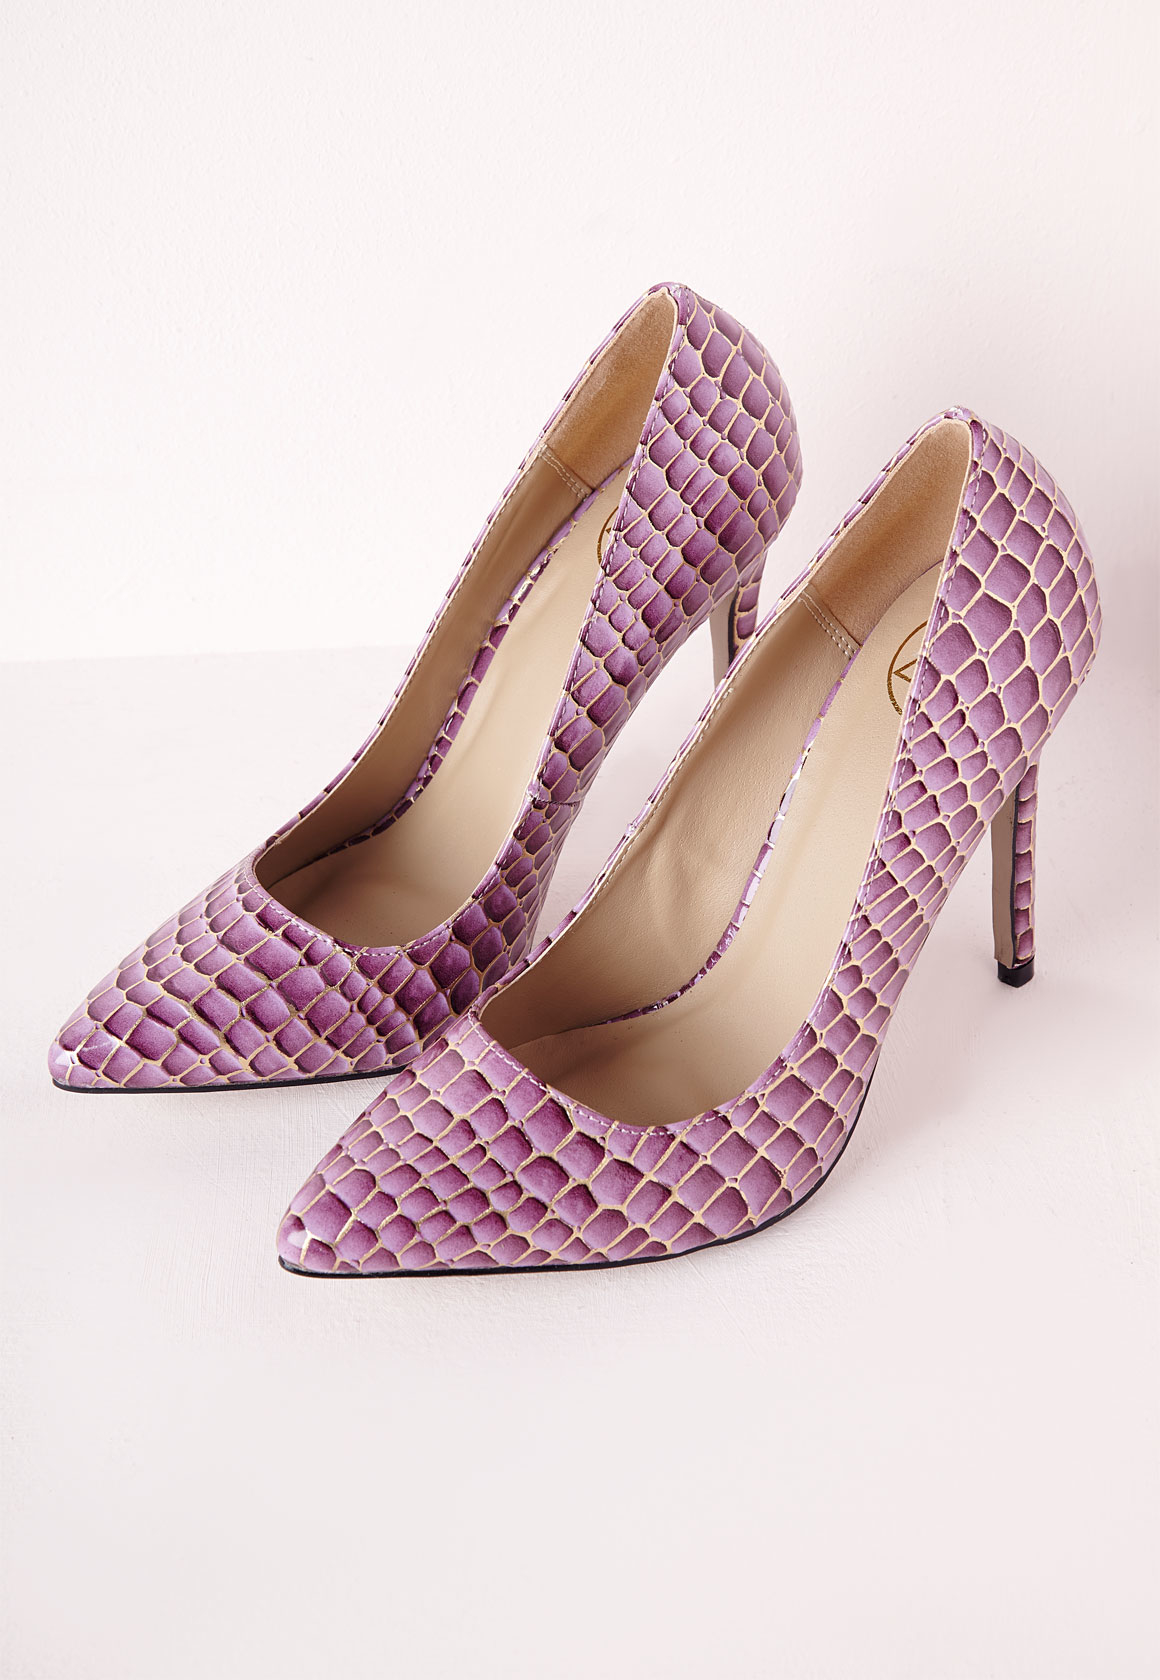 Missguided Stiletto Heel Pumps Patent Lilac Croc in Purple | Lyst